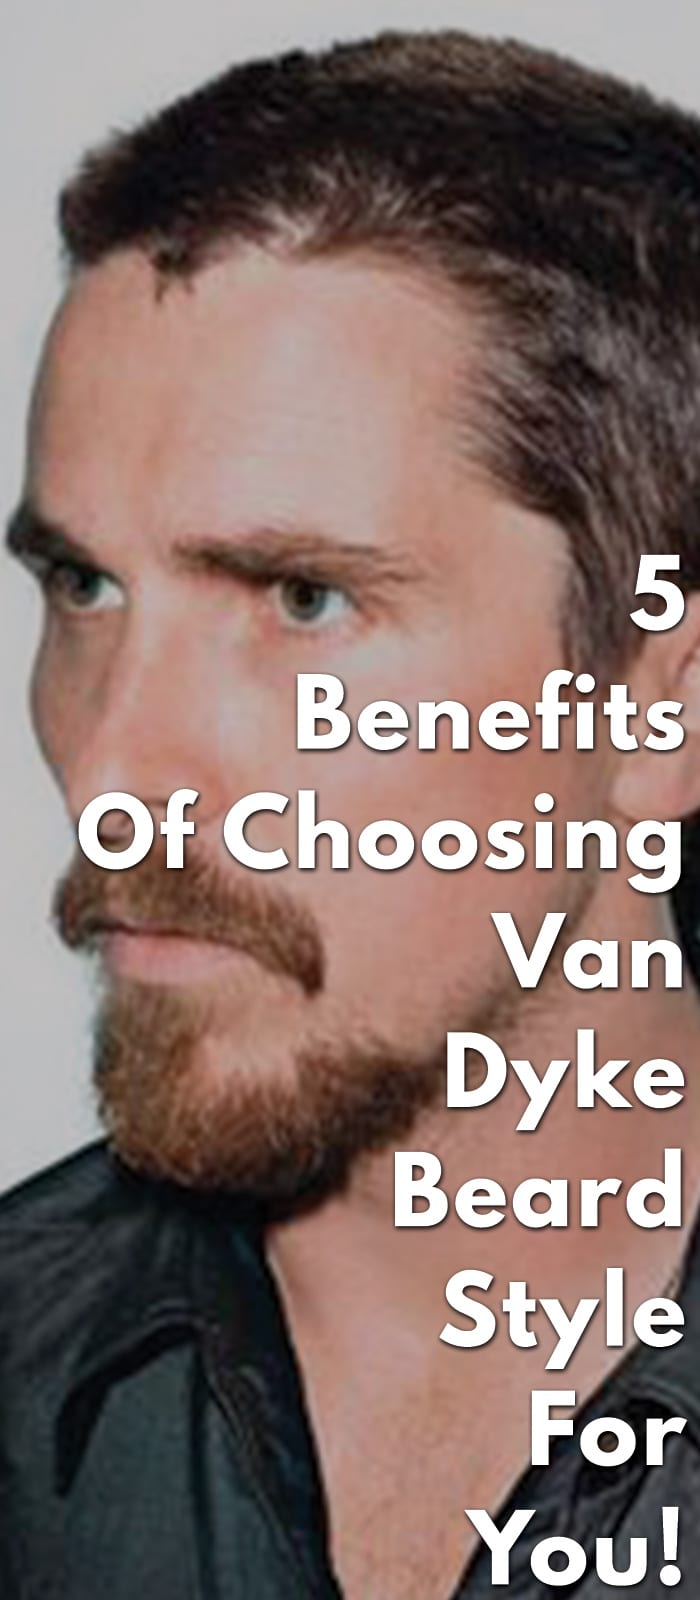 5-Benefits-Of-Choosing-Van-Dyke-Beard-Style-For-You!.